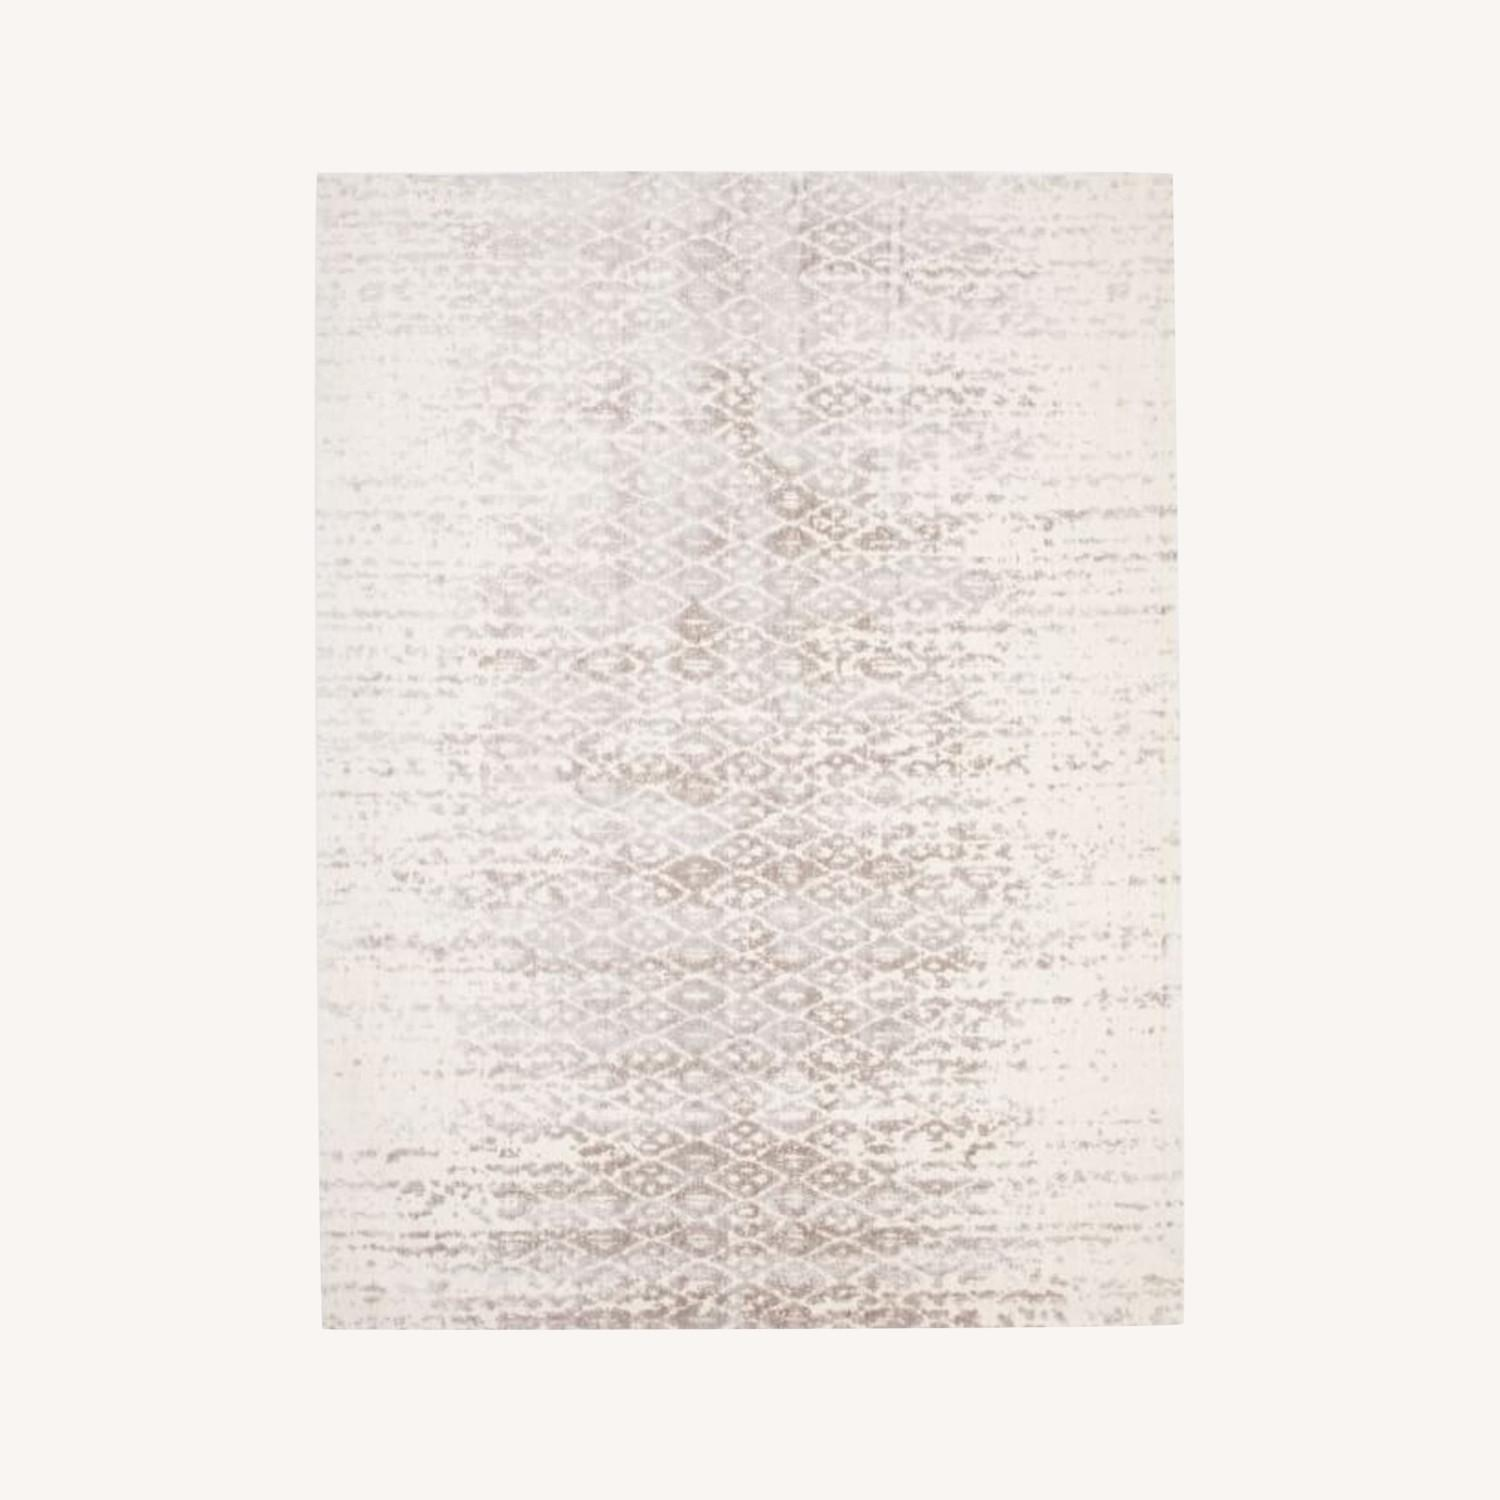 West Elm Foil Diamonds Rug, Platinum - image-0